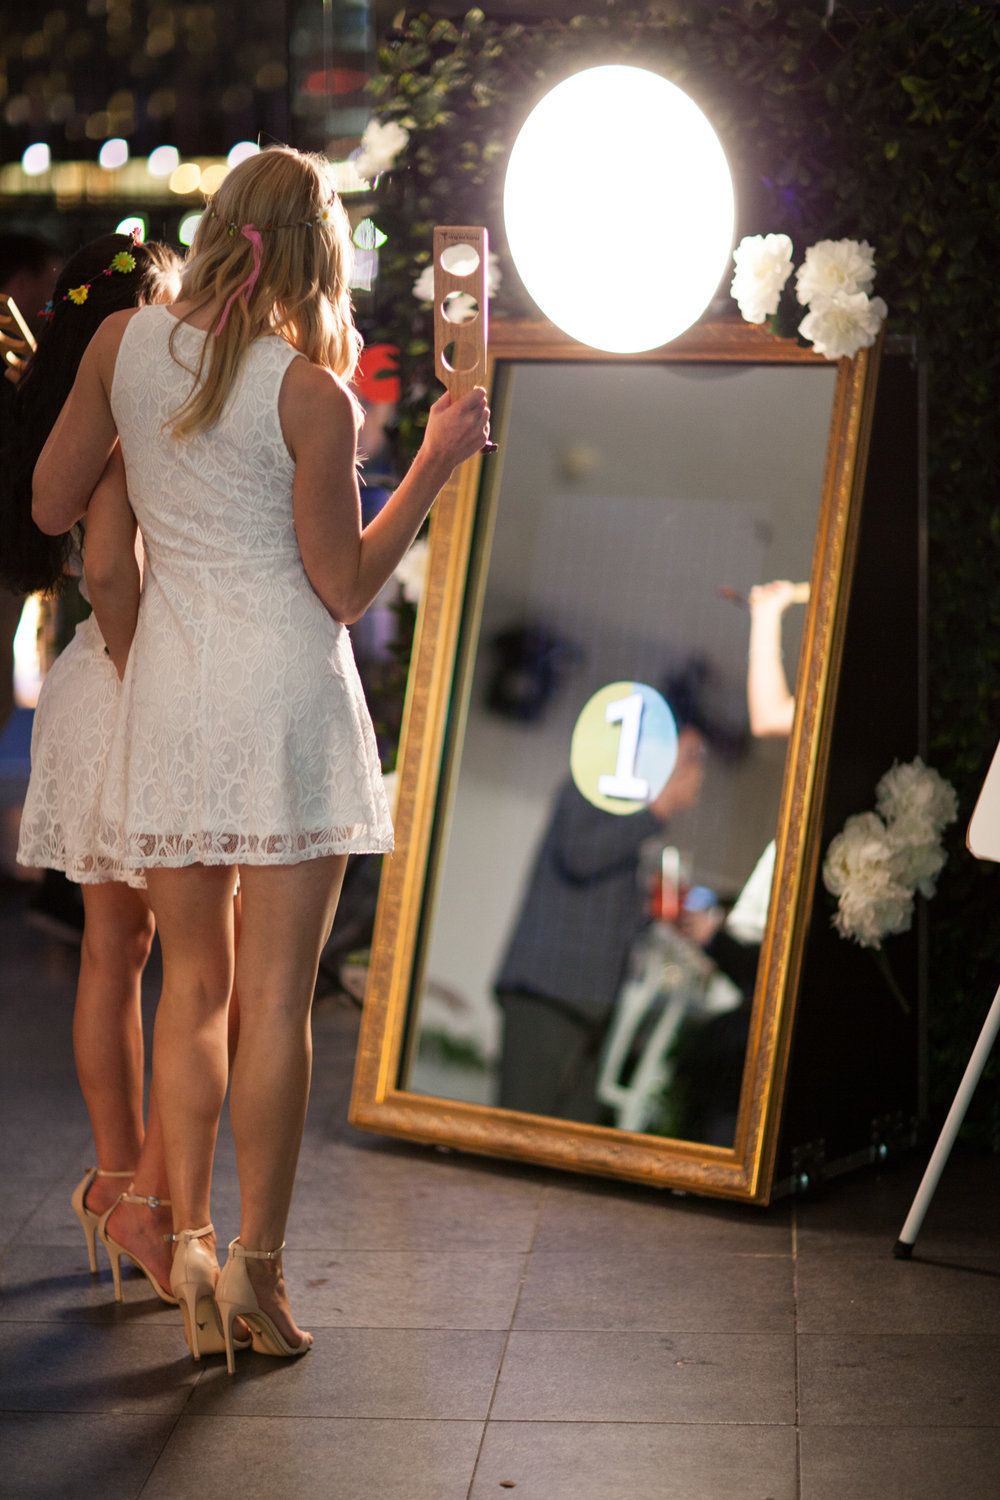 Happy Selfie Magic Mirror ideale da nolleggiare per creare un area Selfie per gli ospiti del tuo Matrimonio